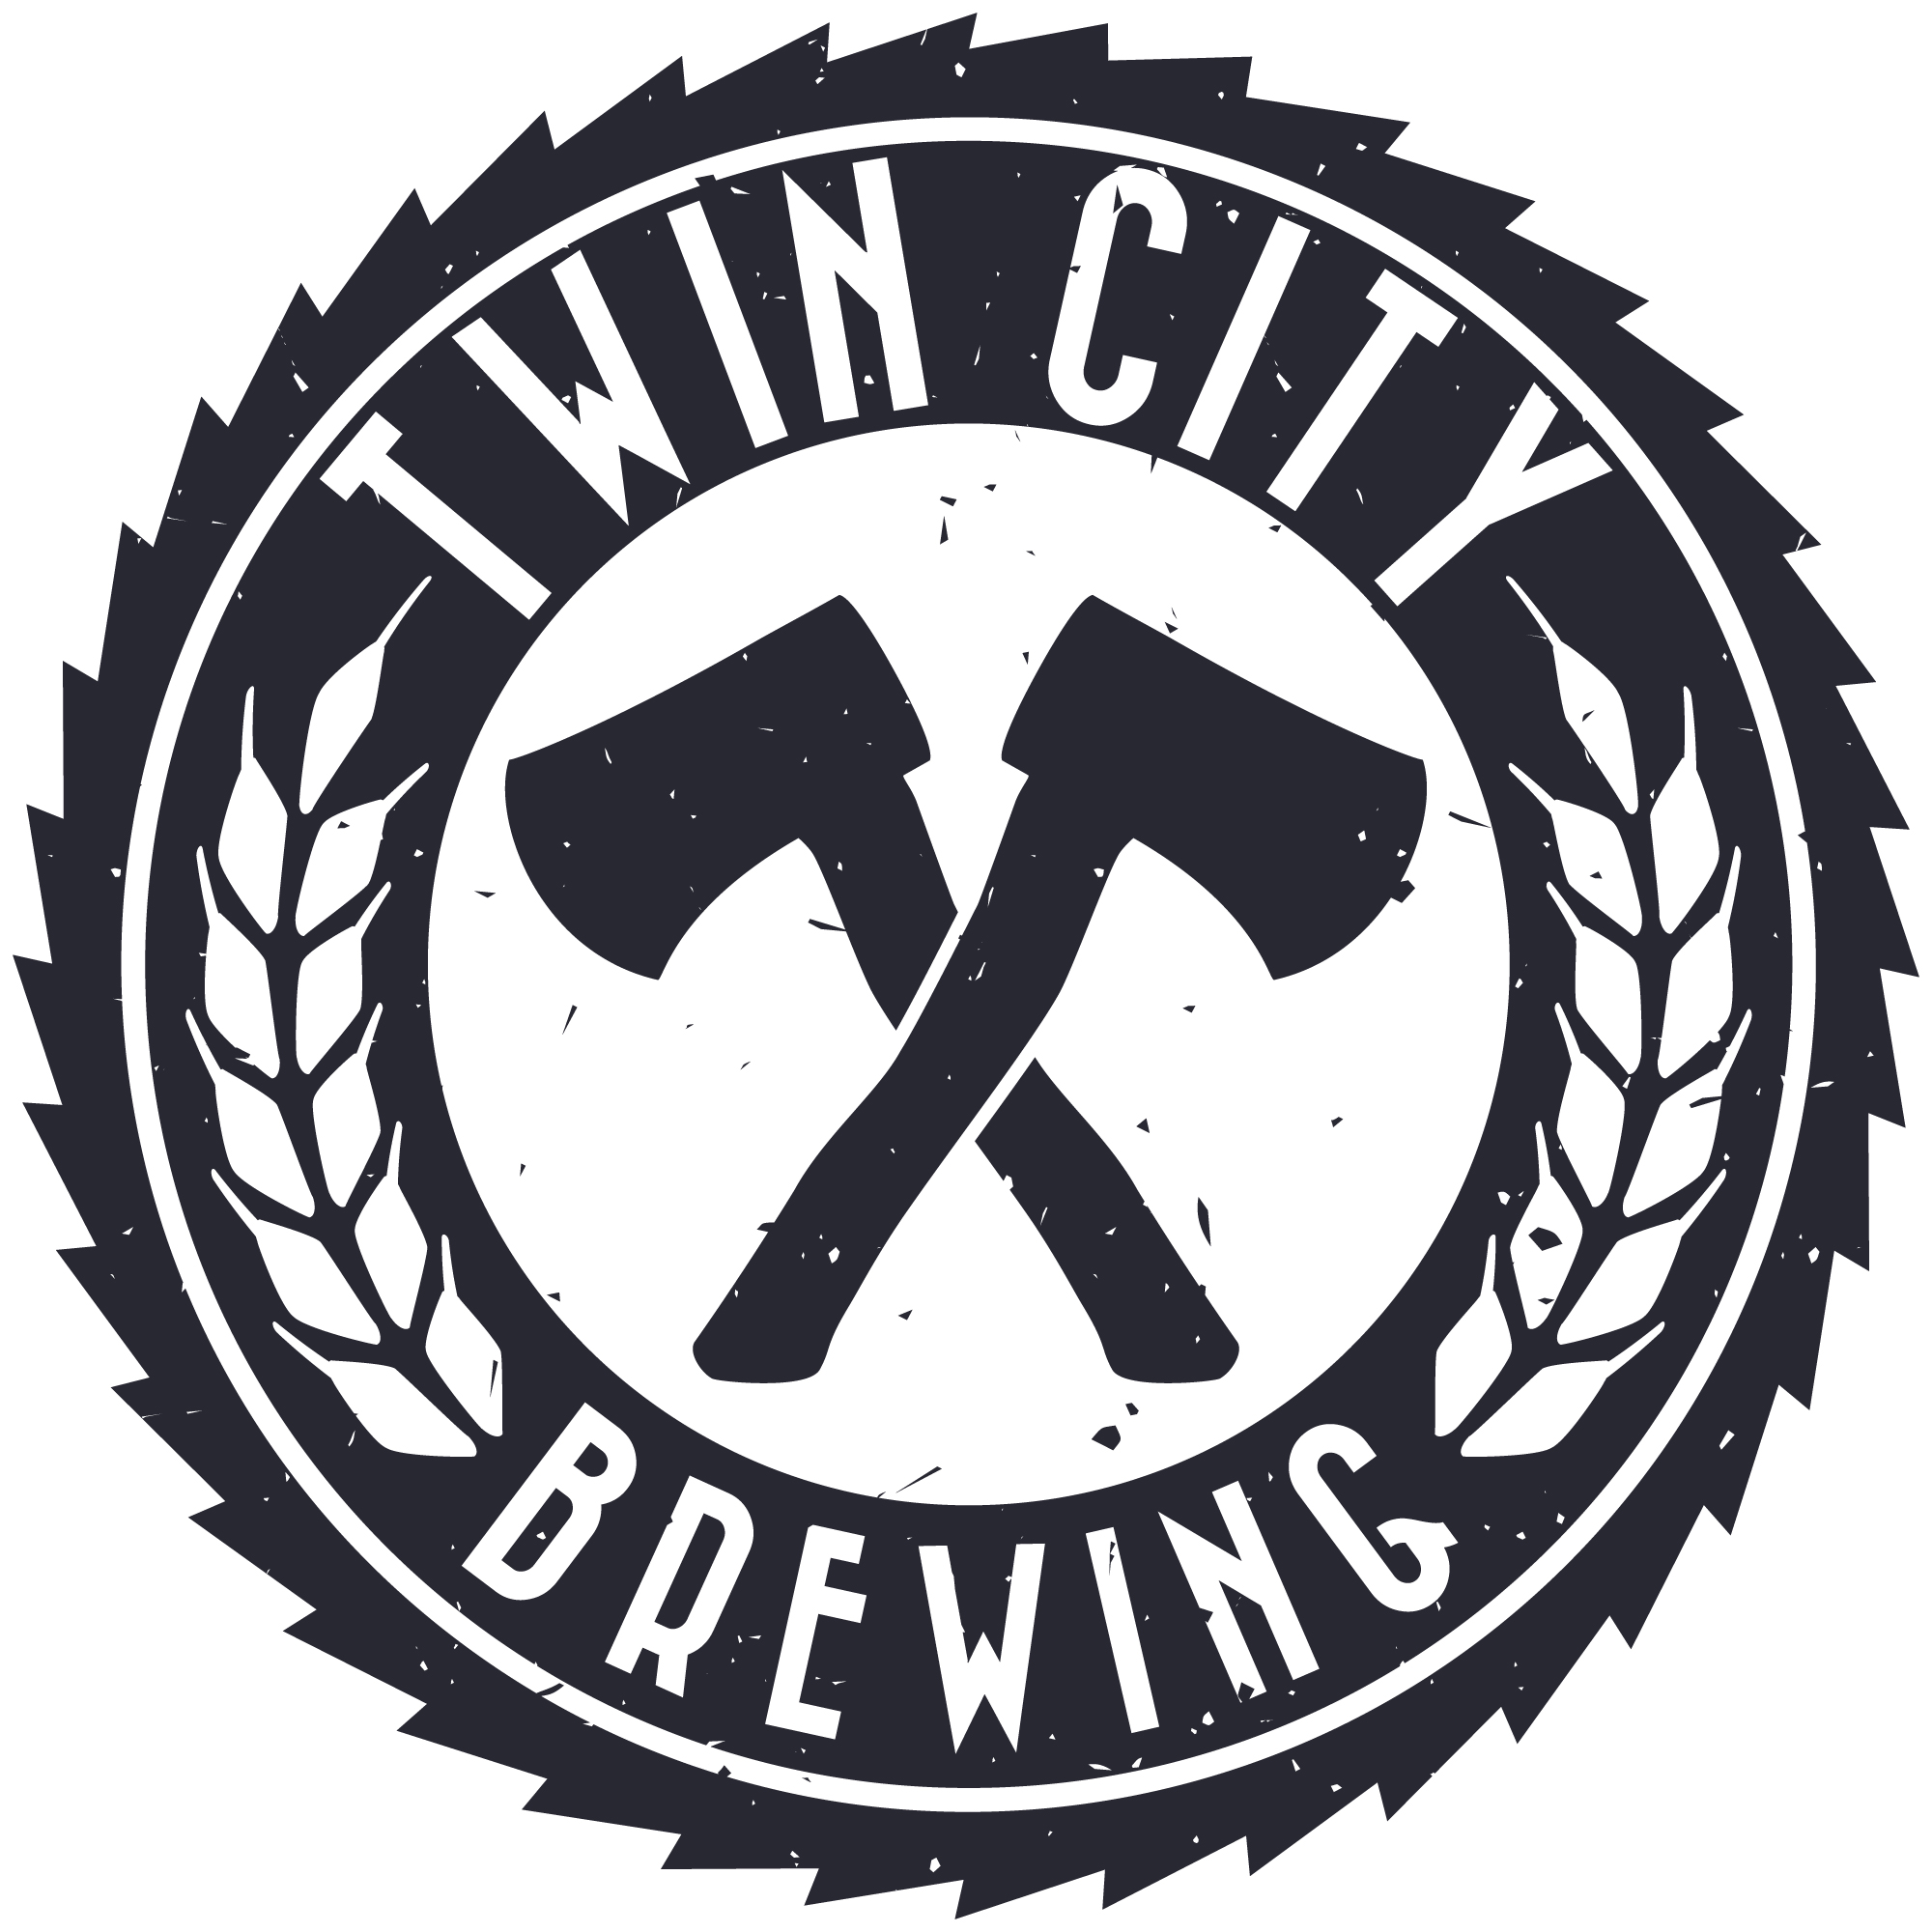 Copy of Twin City Brewing